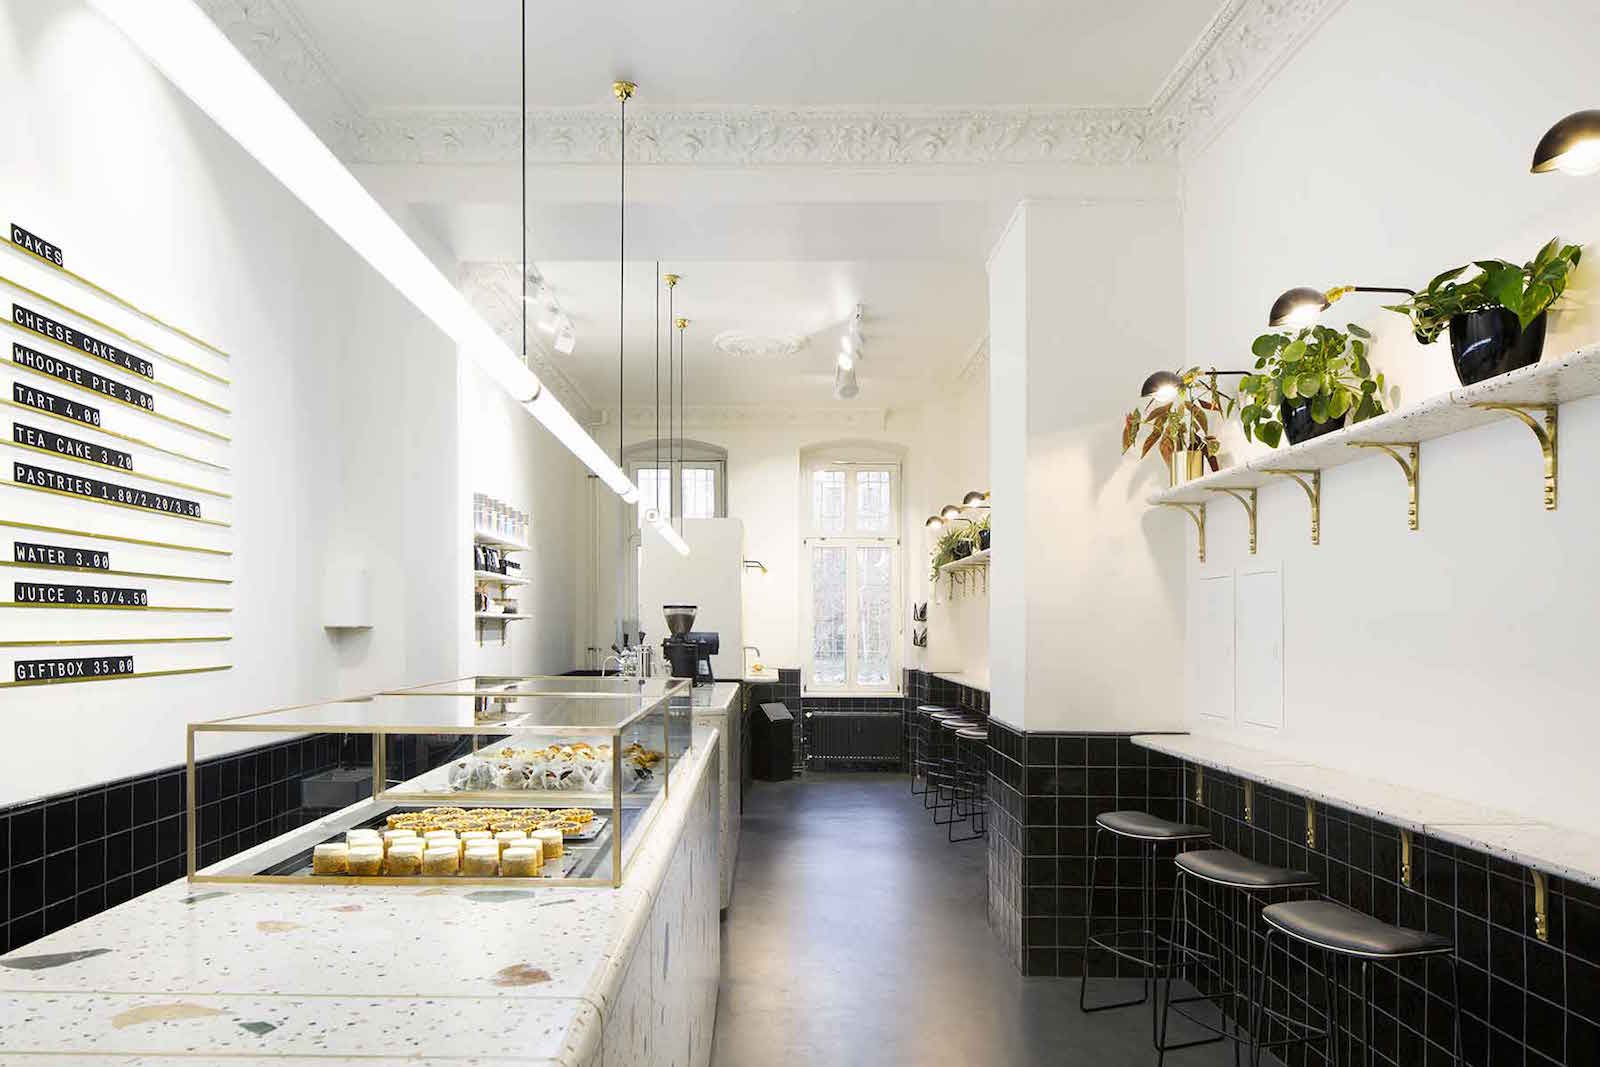 Berlin Interior Design Five Elephant Cafe In Mitte Berlin Trendland Online Magazine